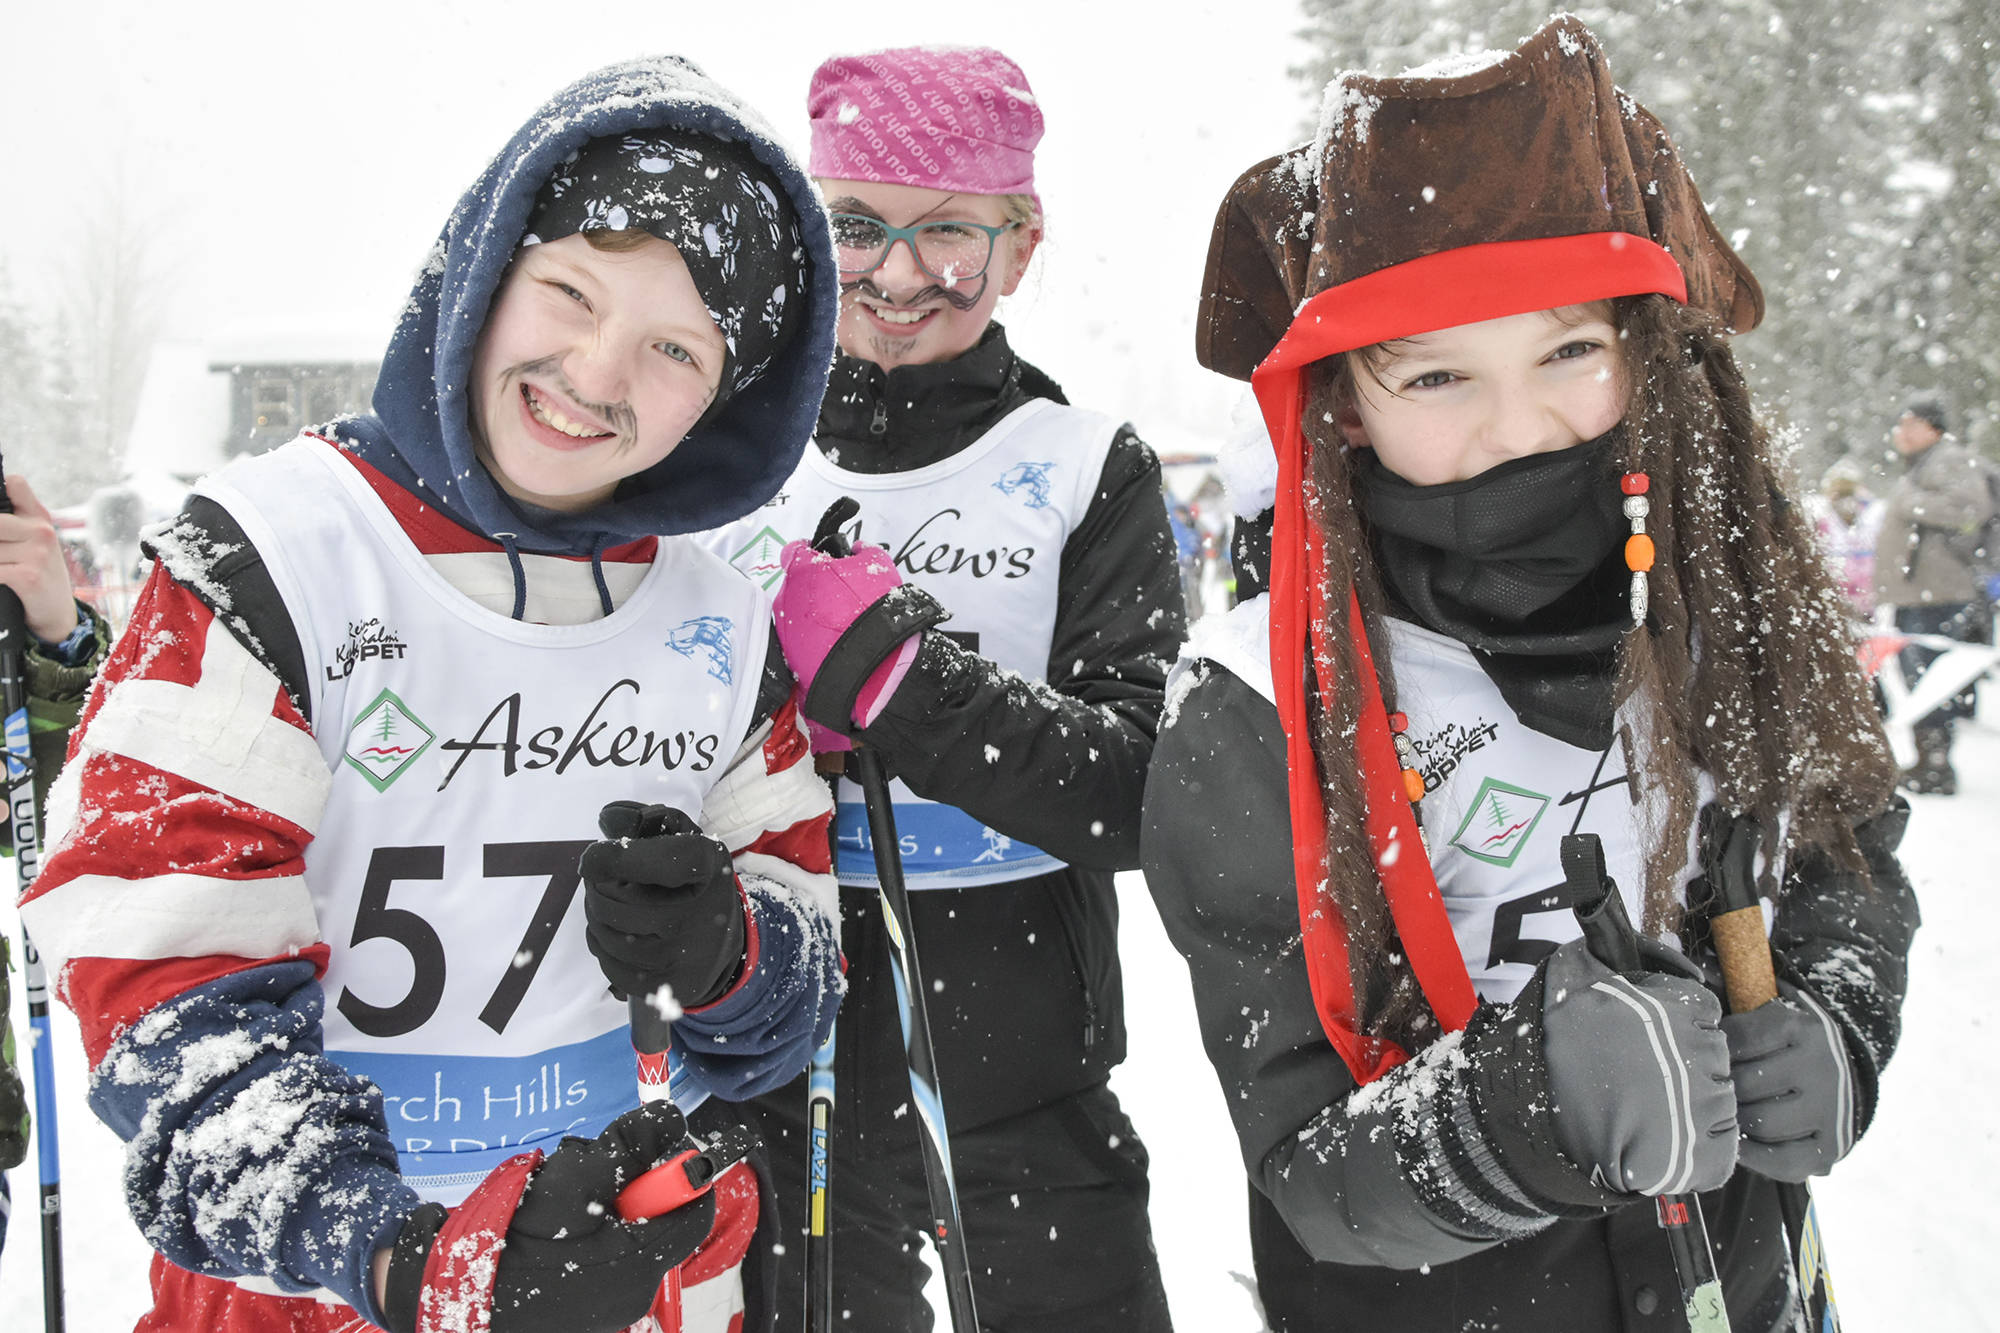 "Dexter Derksen, Bella Haak and Hayden Sherwood from MV Beattie give their best pirate ""Arrr!"" before heading out on the trails for the 2020 Pirate Loppet on Larch Hills Friday, Jan. 31, 2020. (Cameron Thomson - Salmon Arm Observer)"